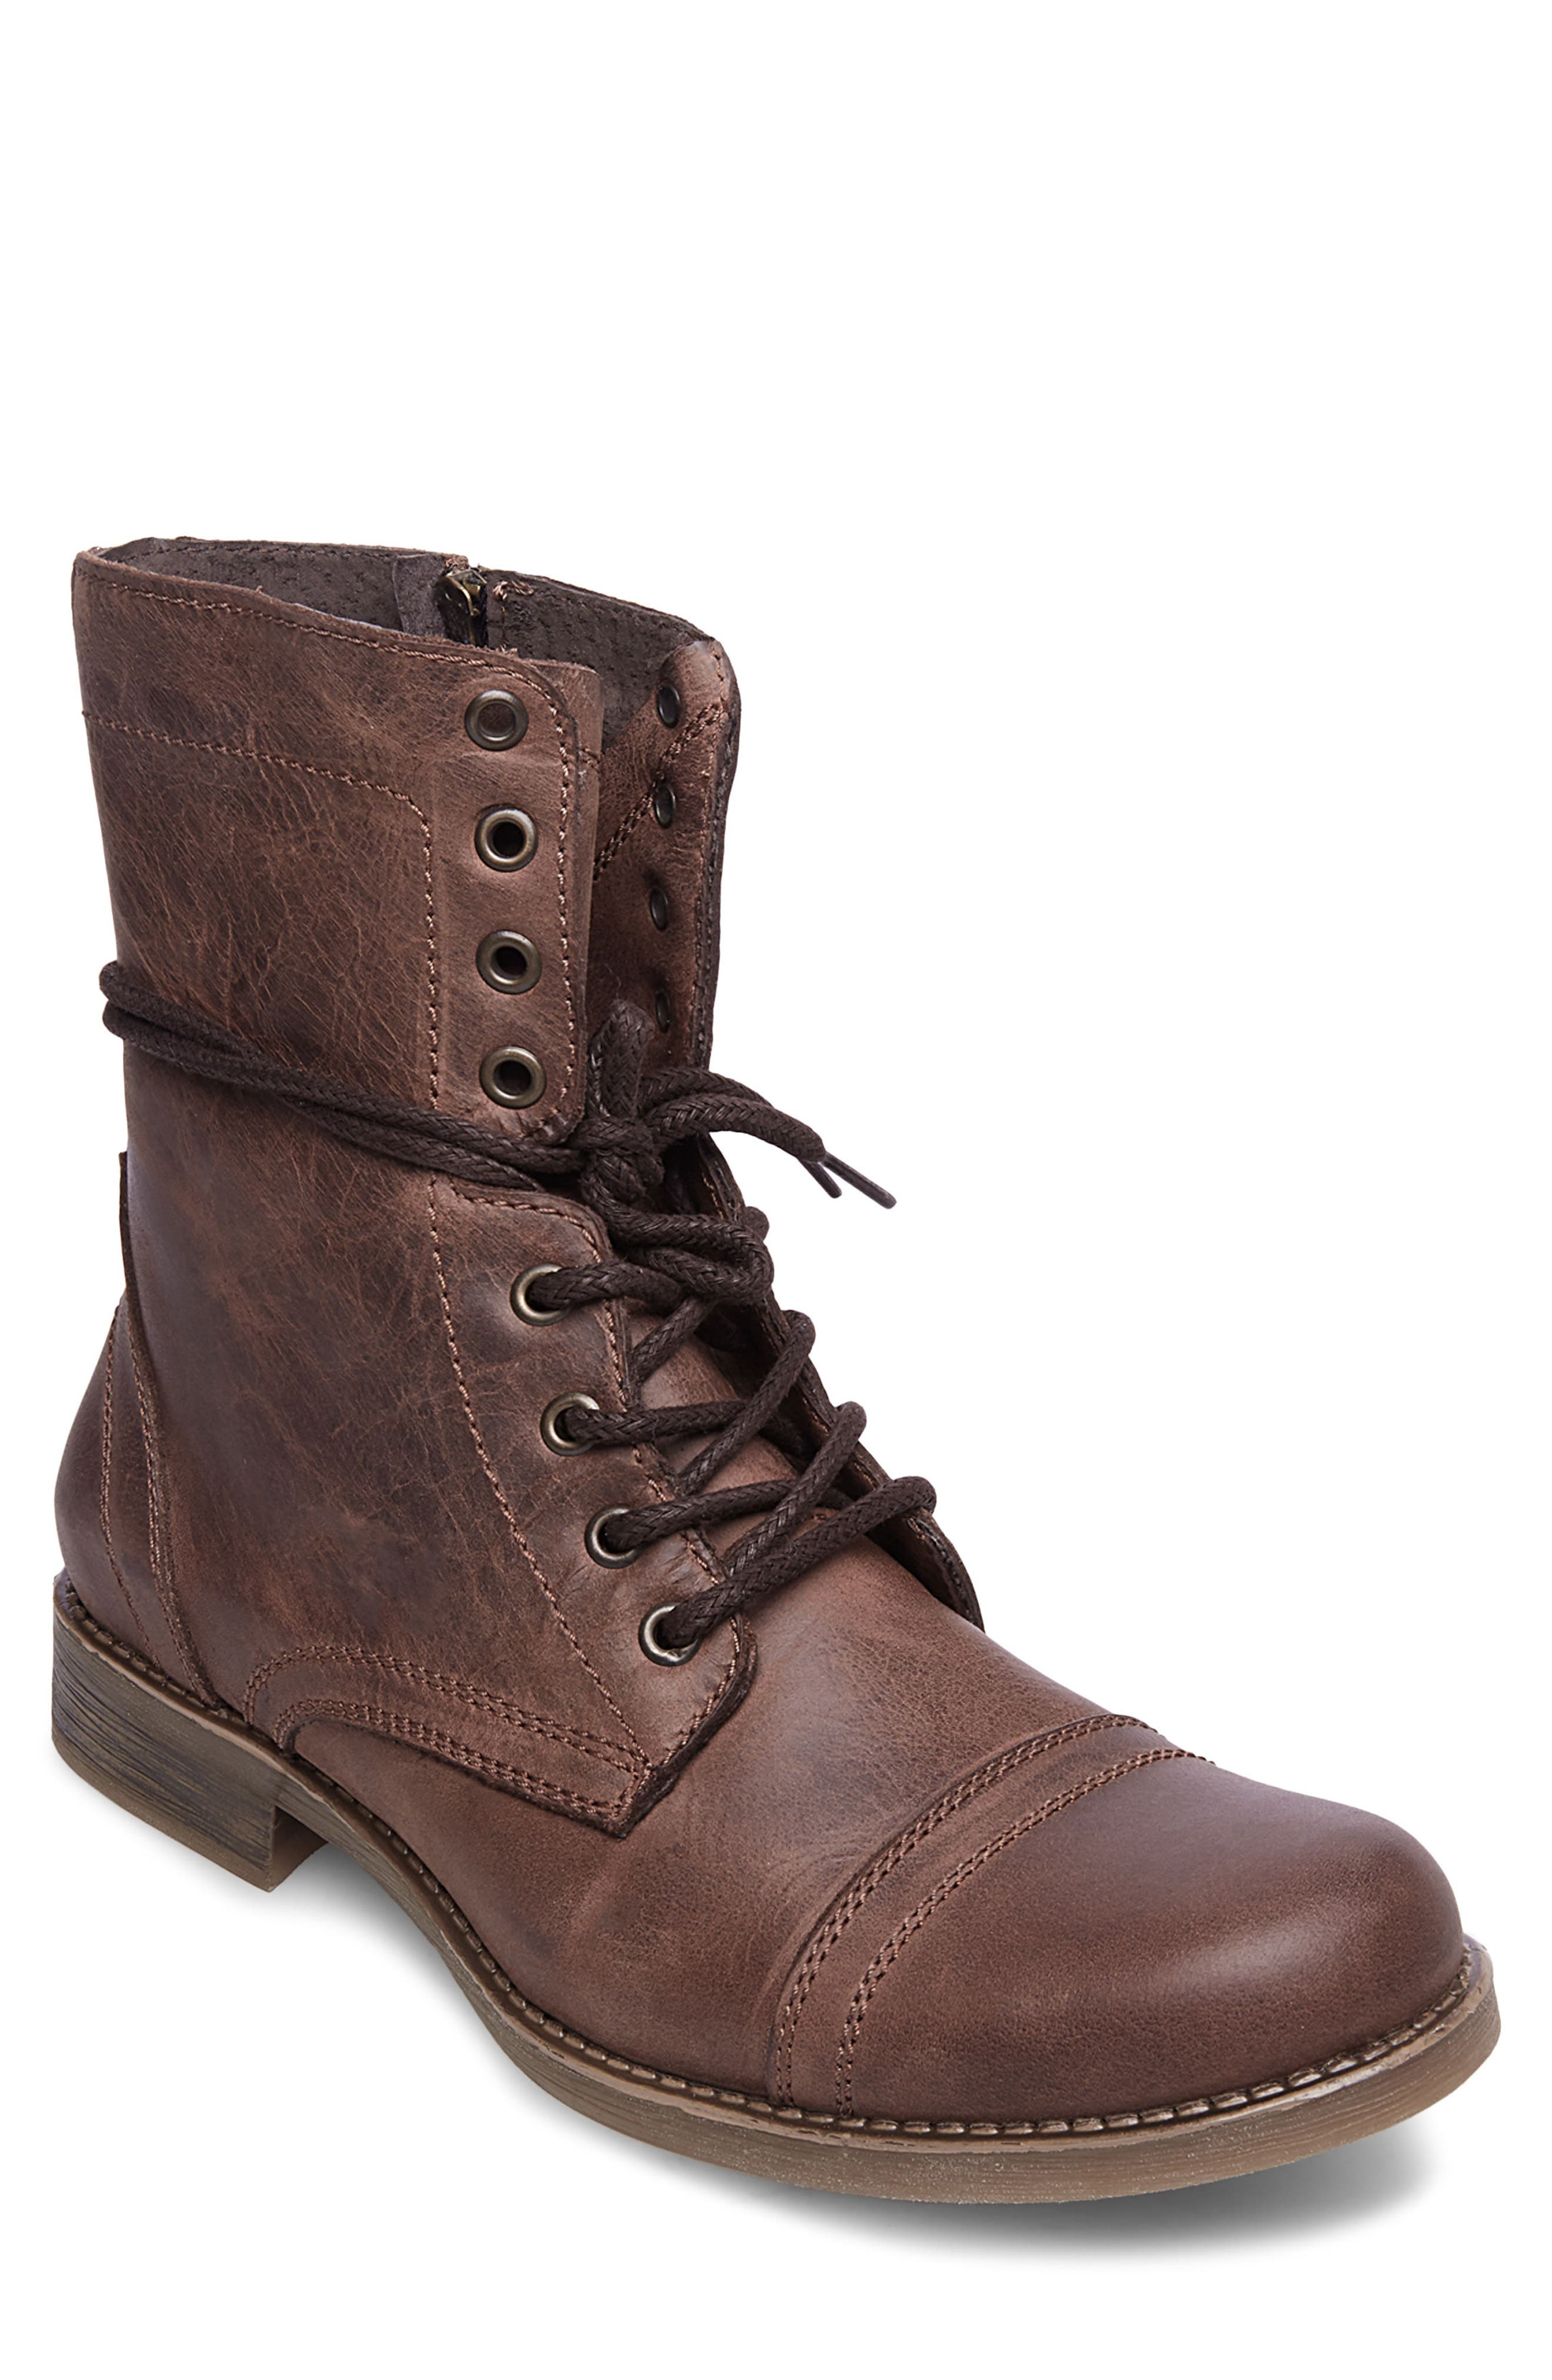 Steve Madden Troopah-C Cap Toe Boot, Brown